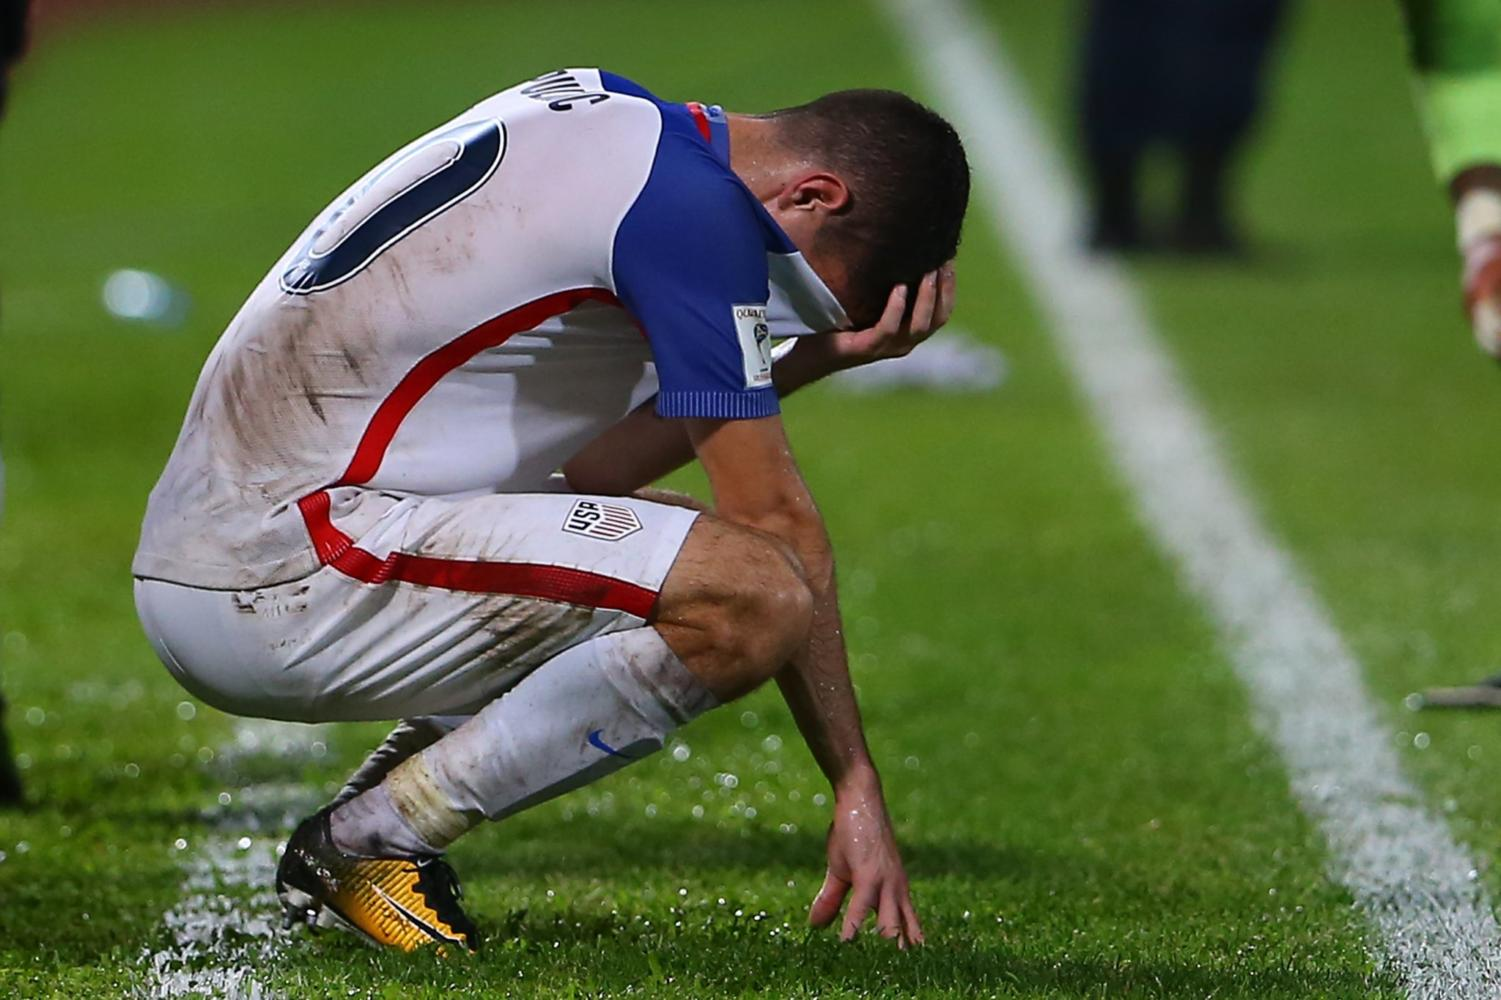 19 year old Christian Pulisic crouching in shame after World Cup aspirations were crushed